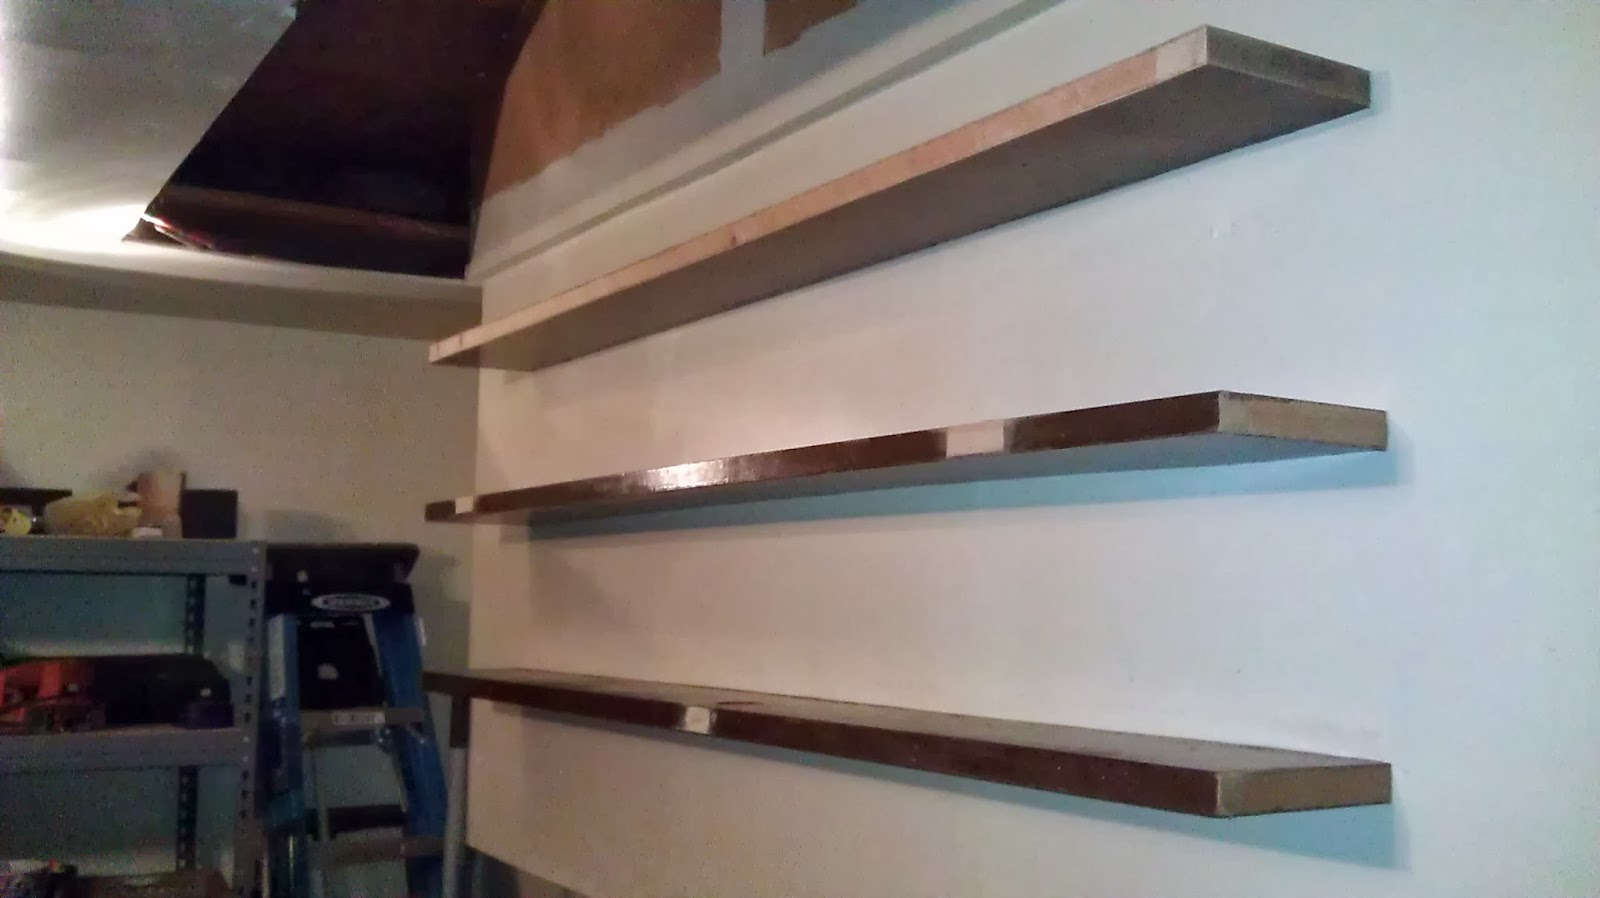 The Amos School of Construction: The Floating Garage Shelves